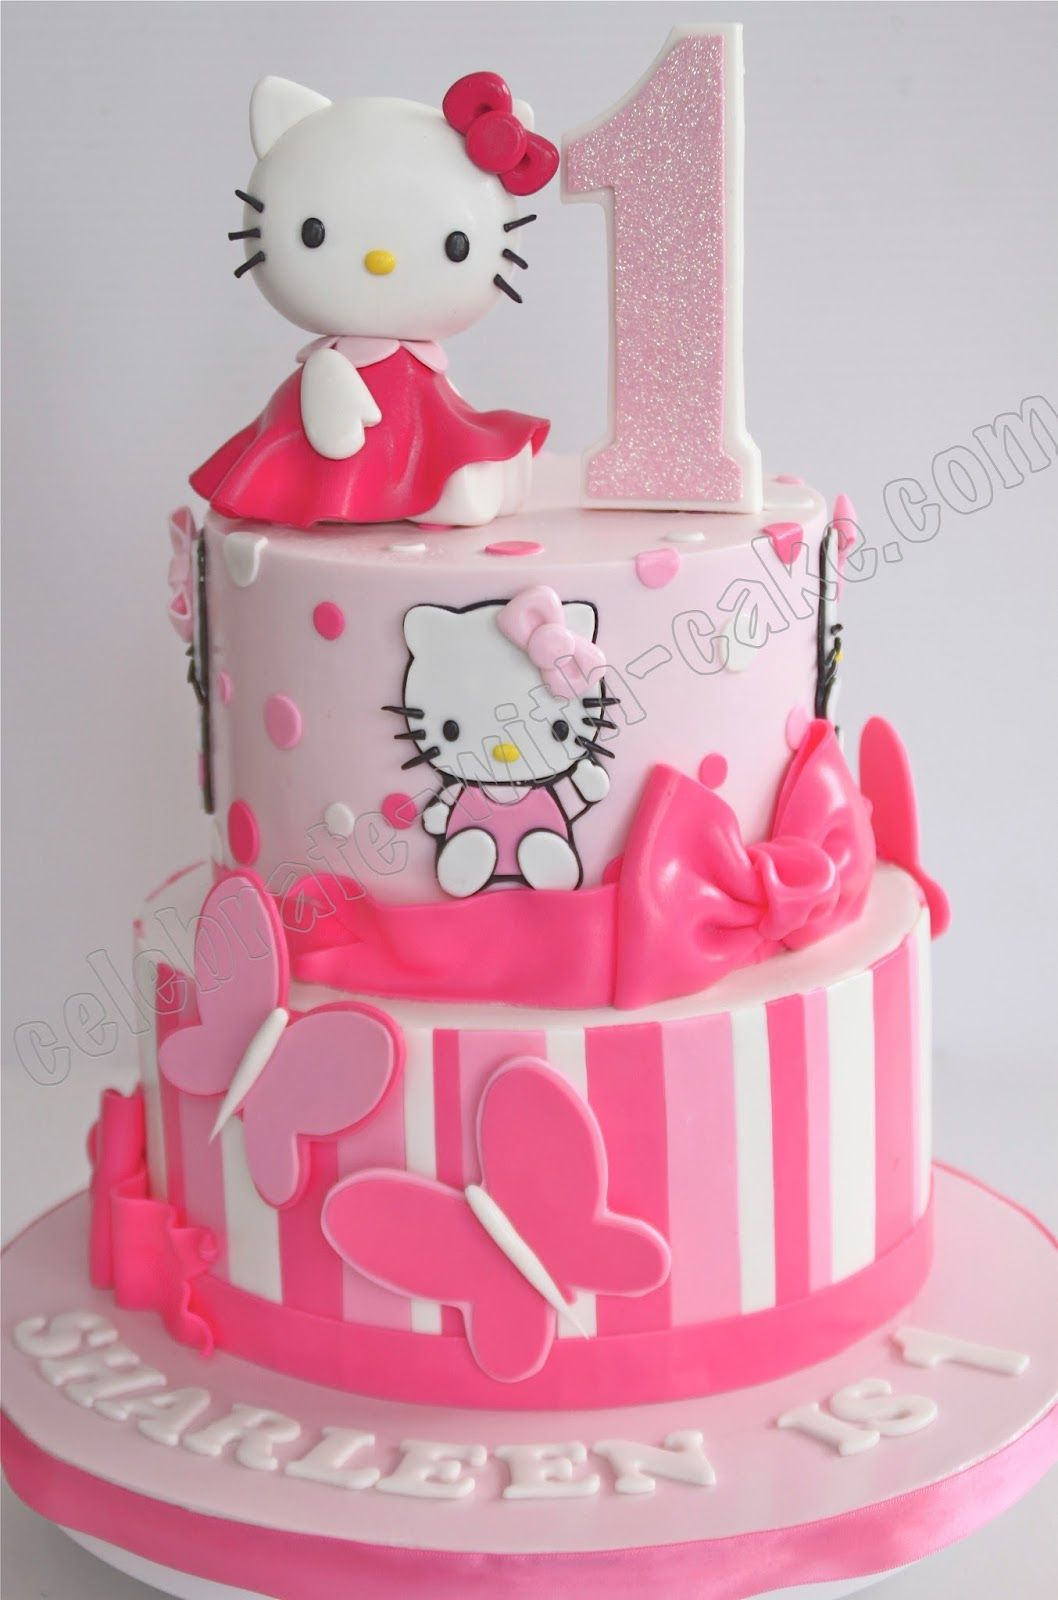 Celebrate With Cake 1st Birthday Hello Kitty Tier Cake Esme 1st